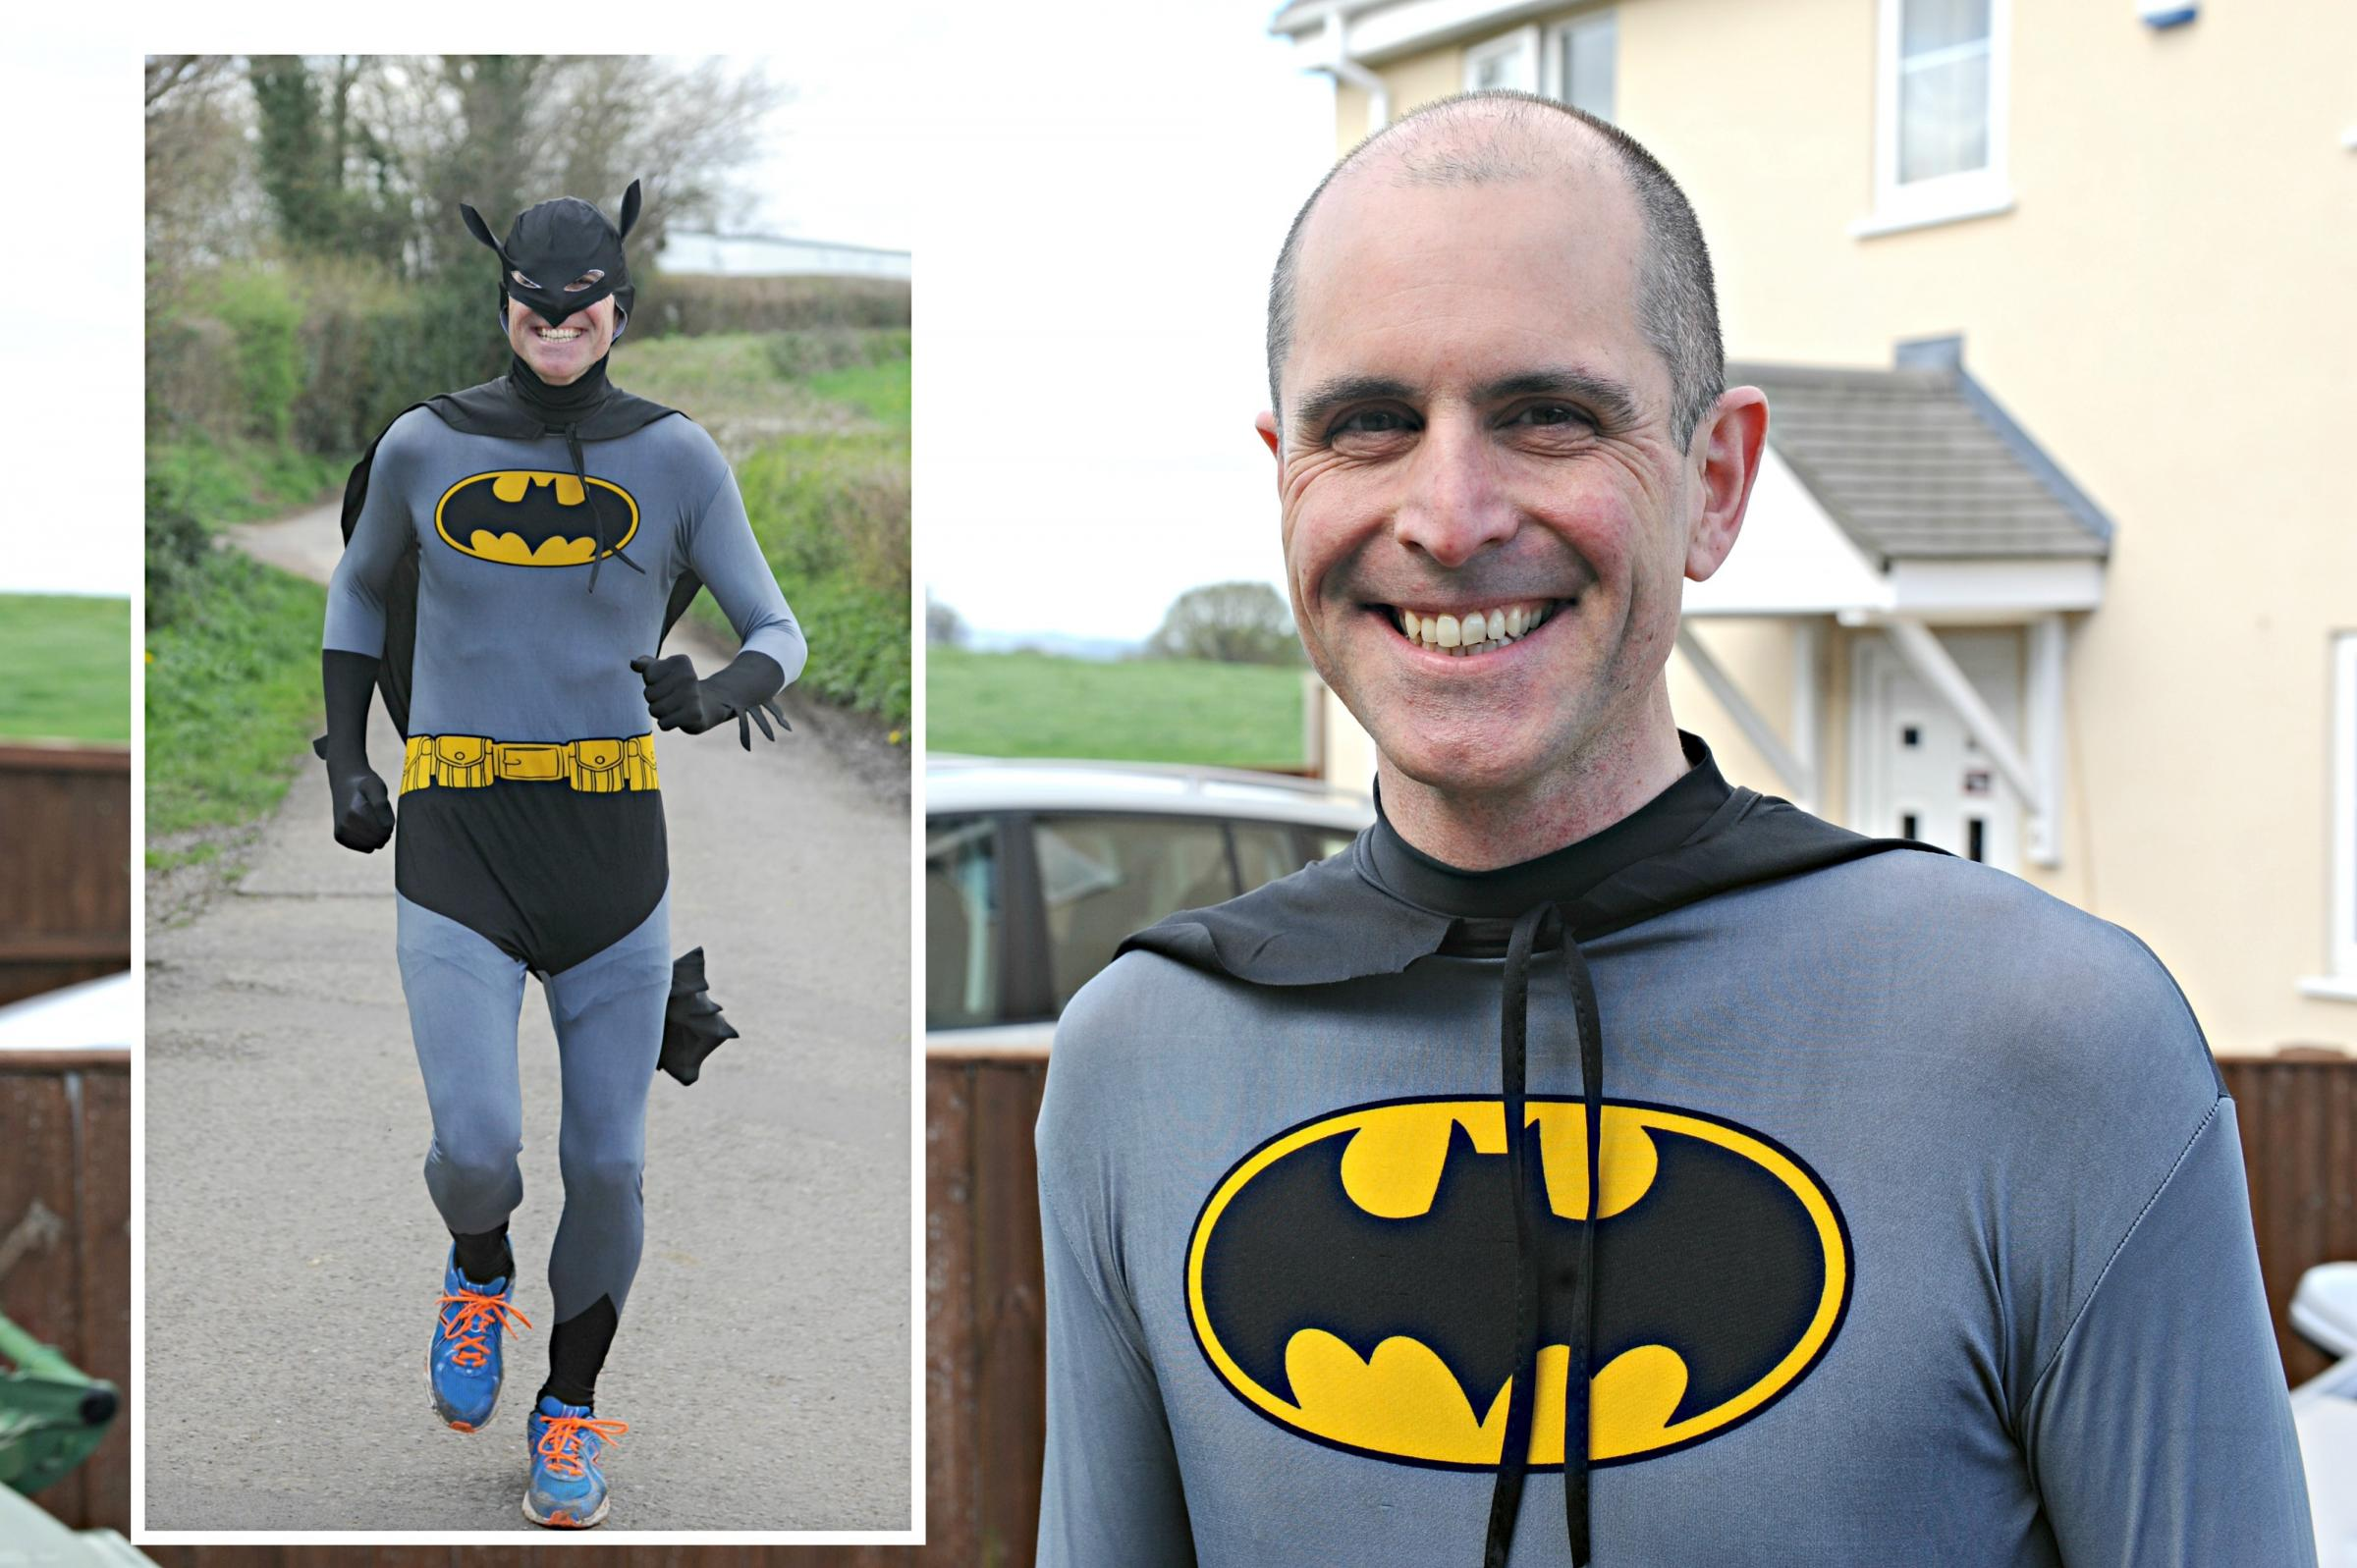 Andy Sargent of Cam preparing to run the London Marathon dressed as Batman in aid of Winston's Wish (5252436)